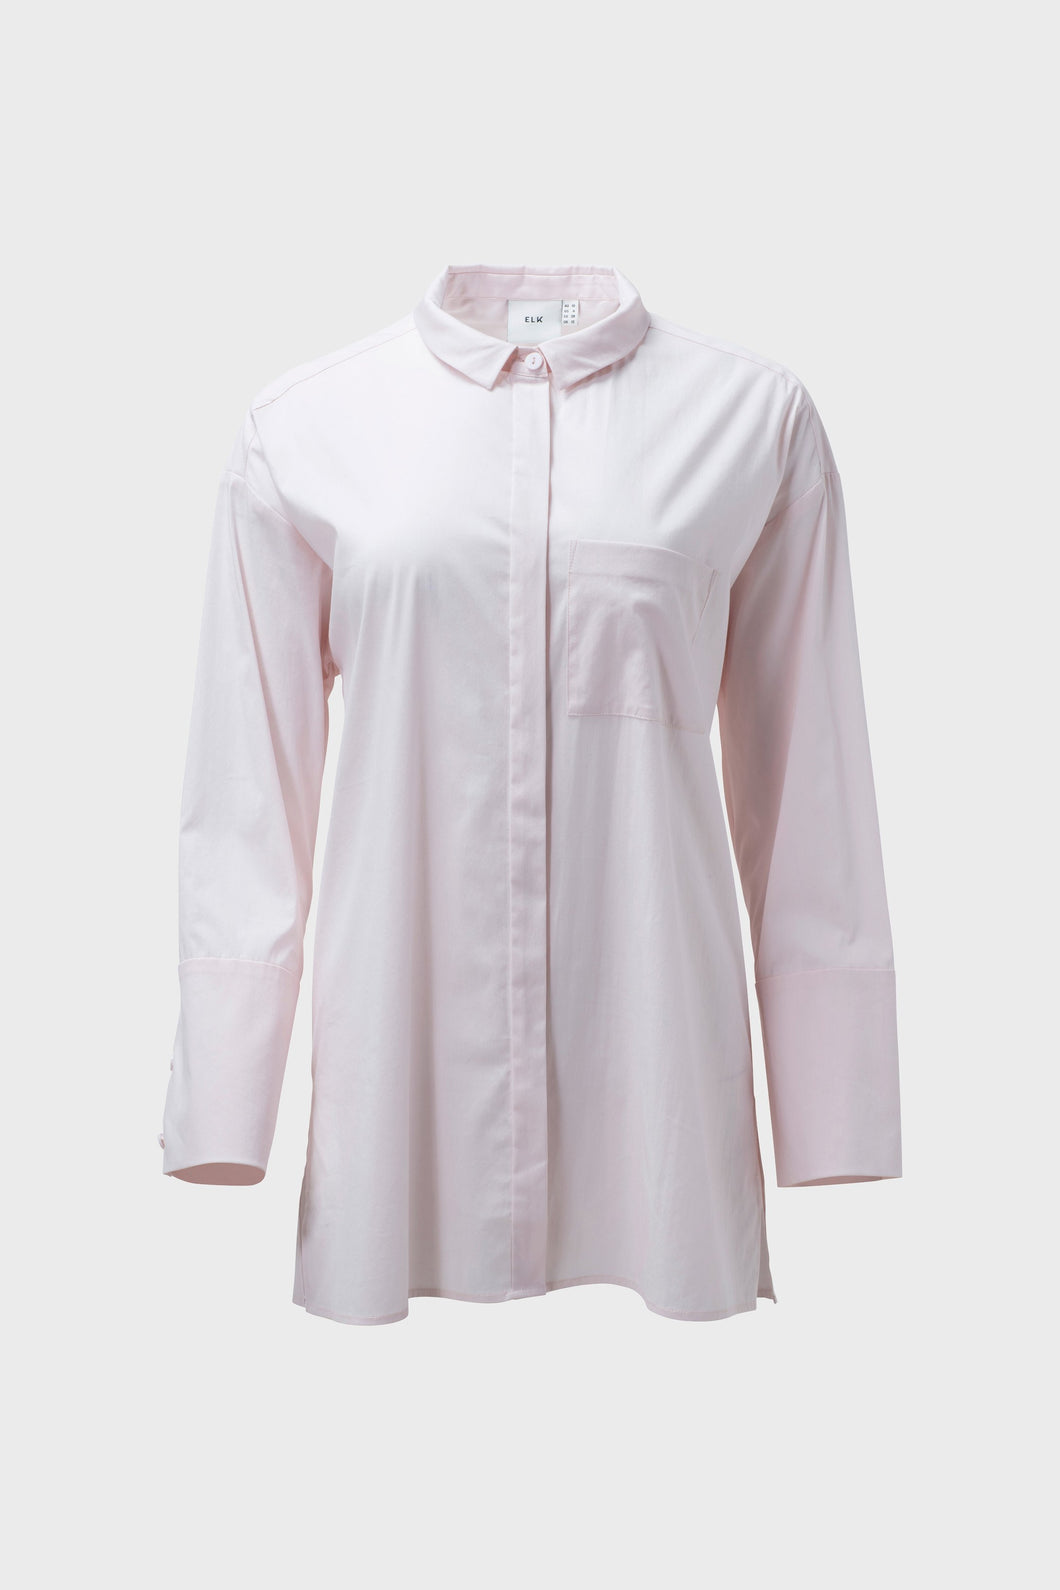 Elk the Label Maida Shirt | Blush